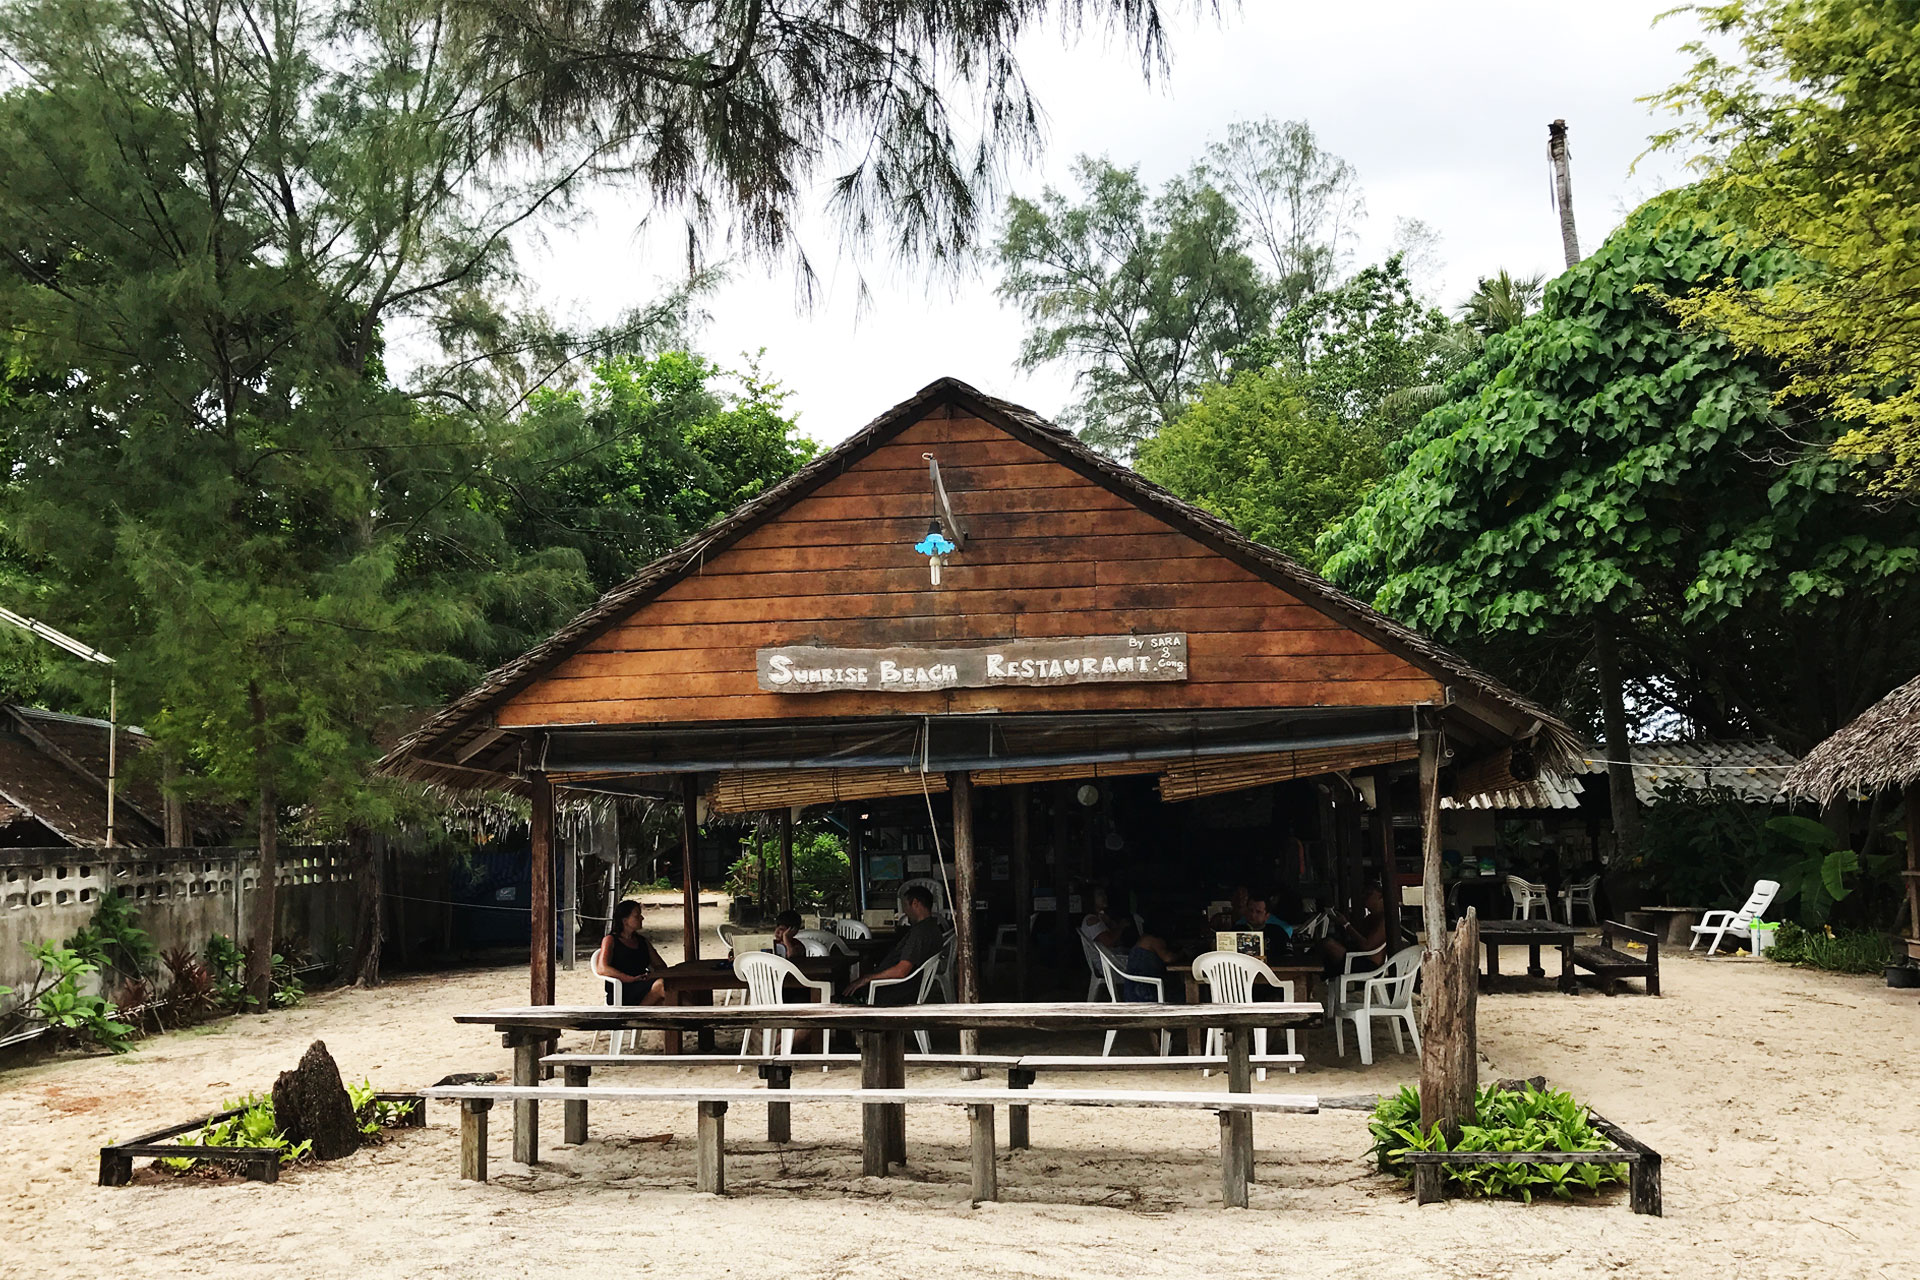 Sunrise Beach Restaurant